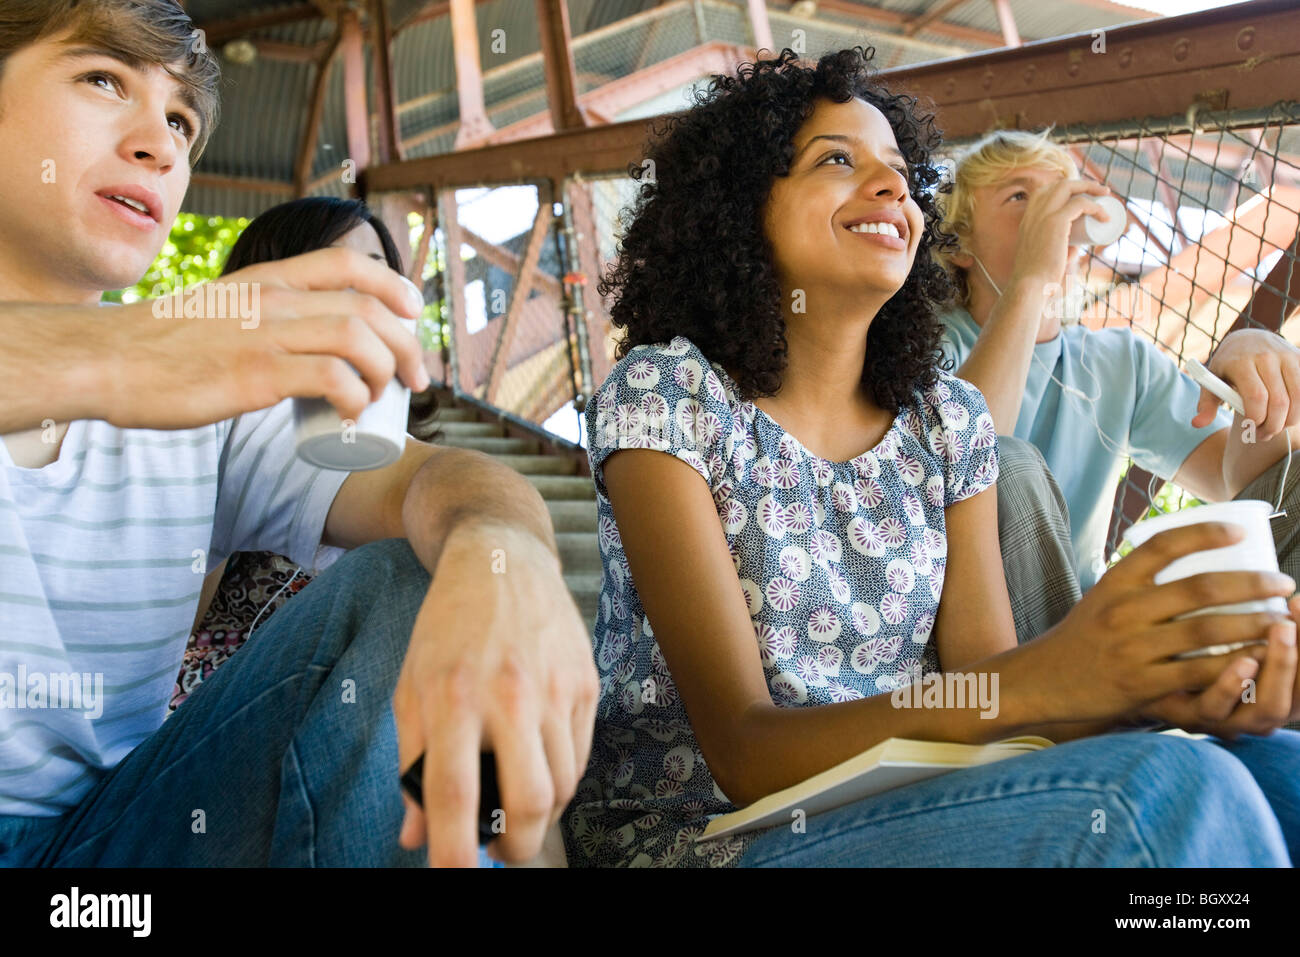 Young woman hanging out with friends watching sports event Stock Photo